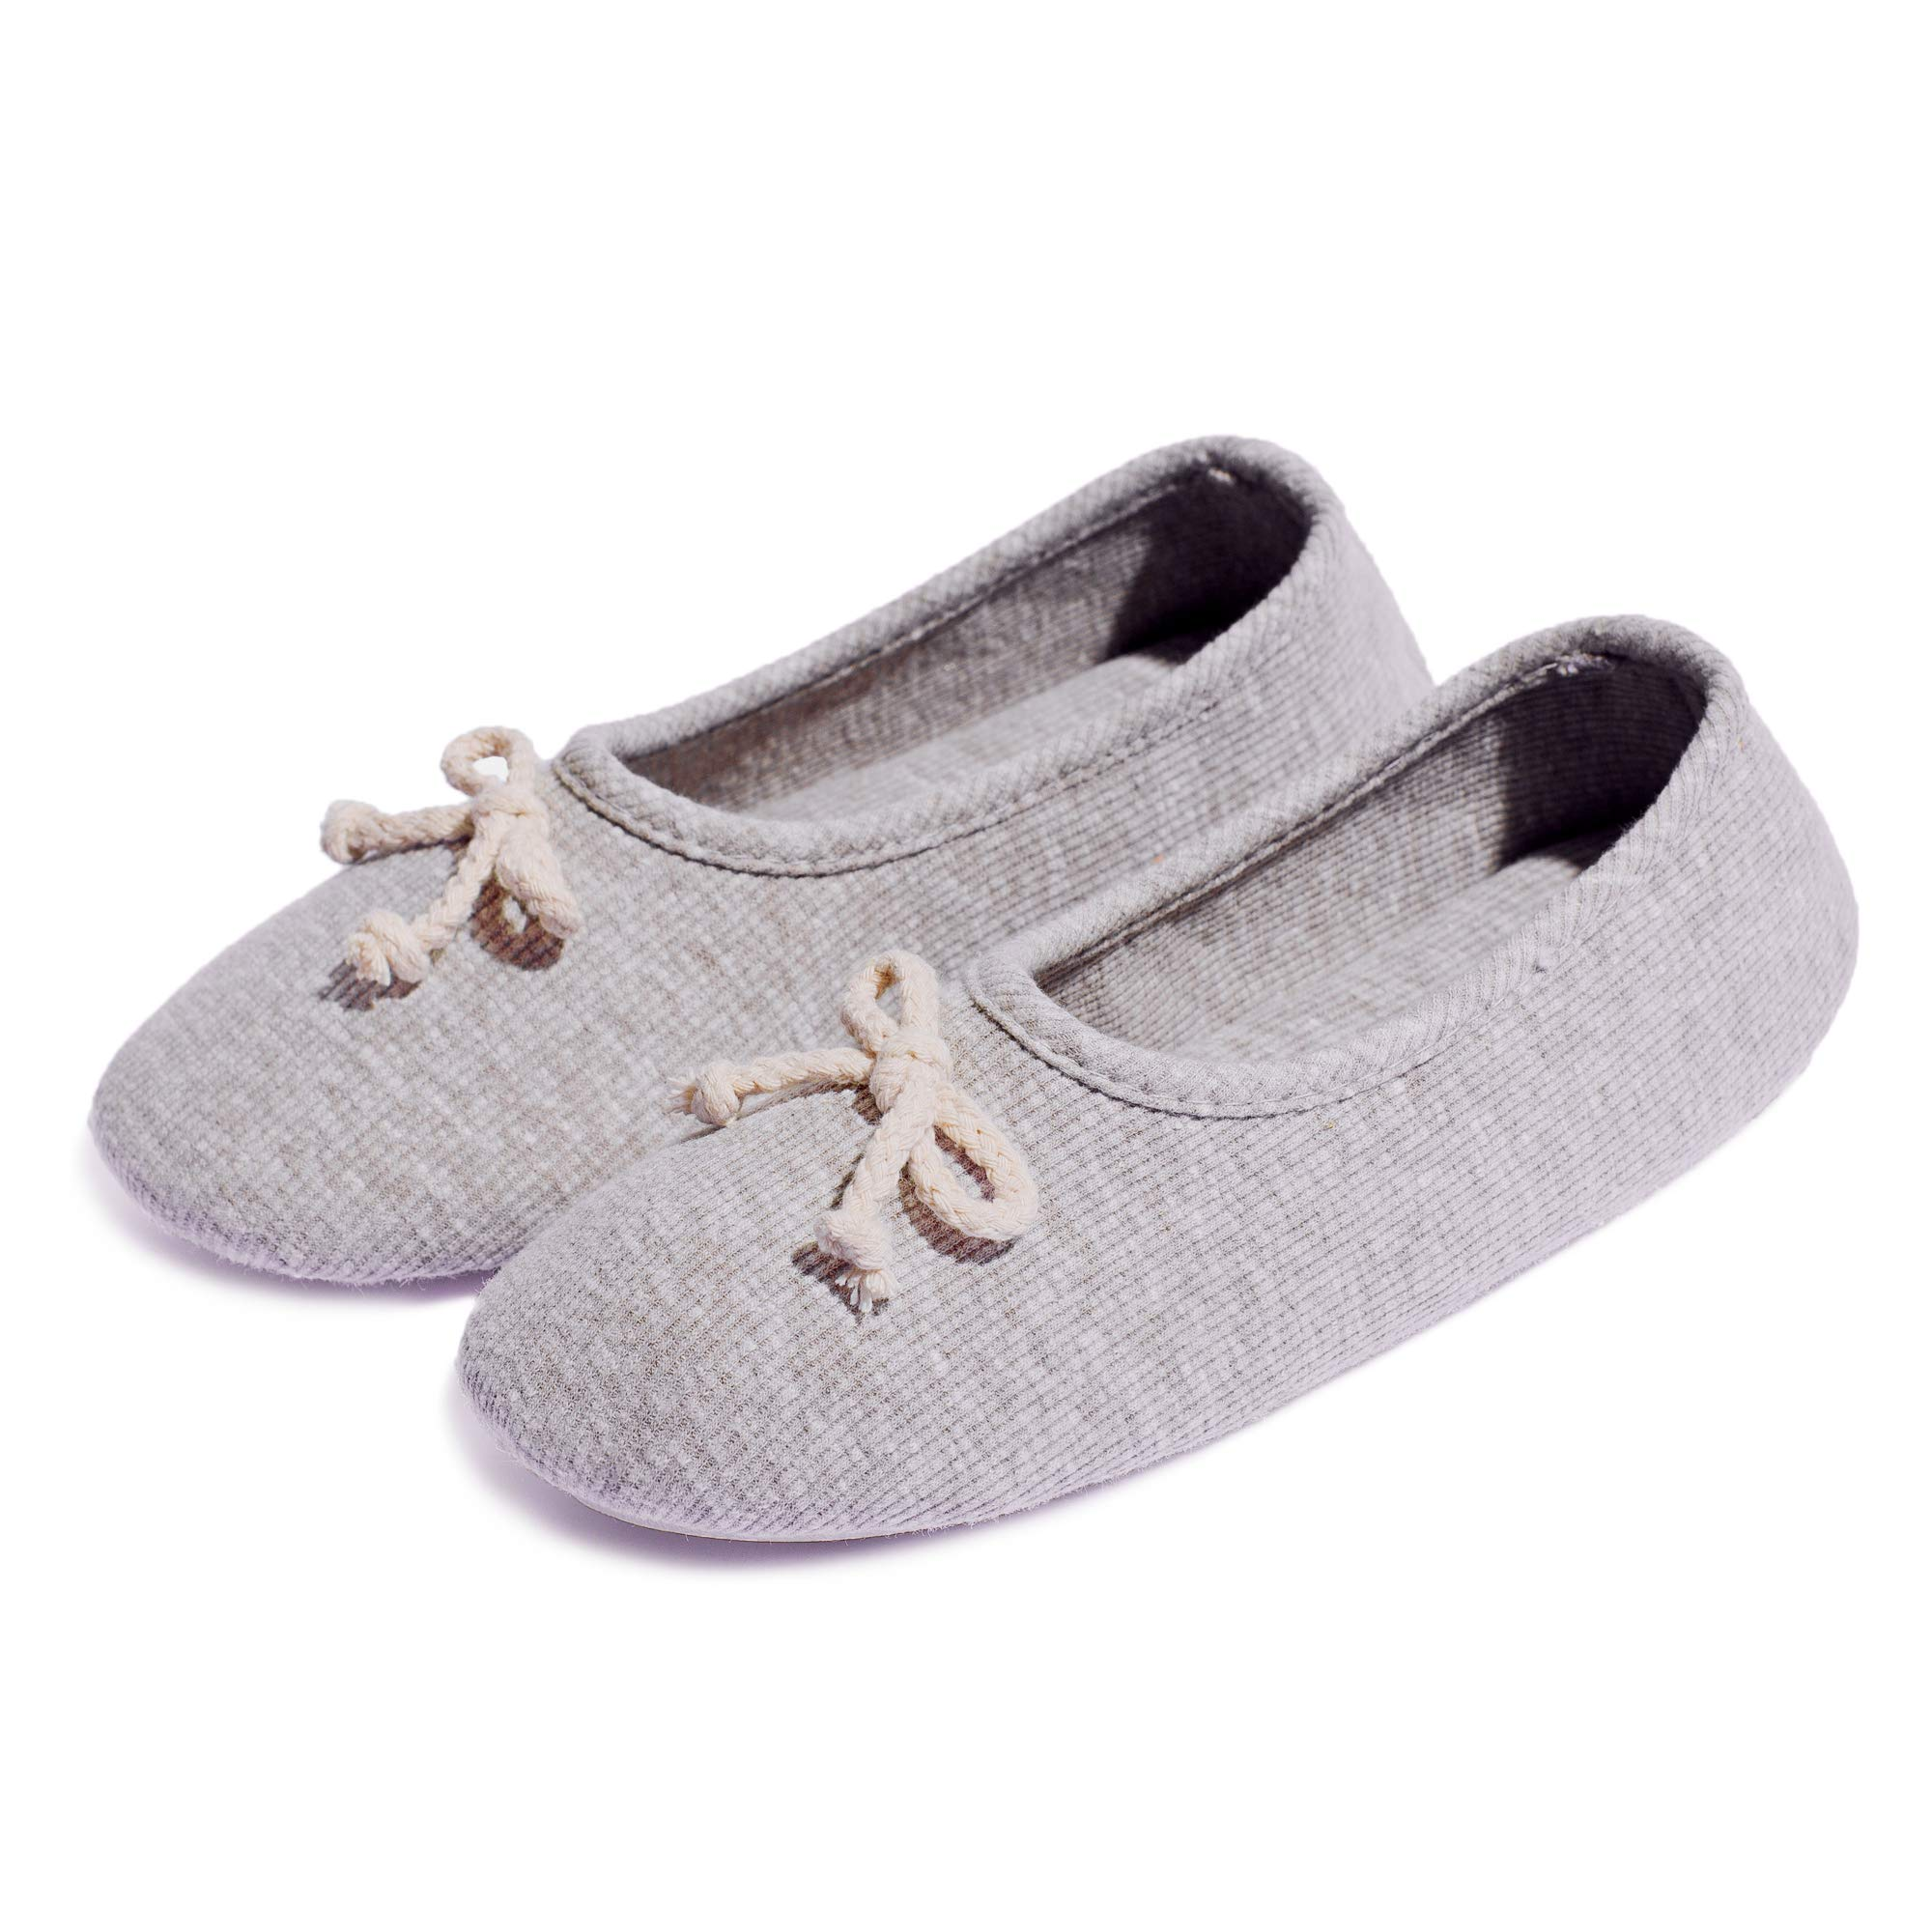 bestfur Women's Comfortable Elastic Knitted Cotton Soft Warm House Slippers Indoor Shoes